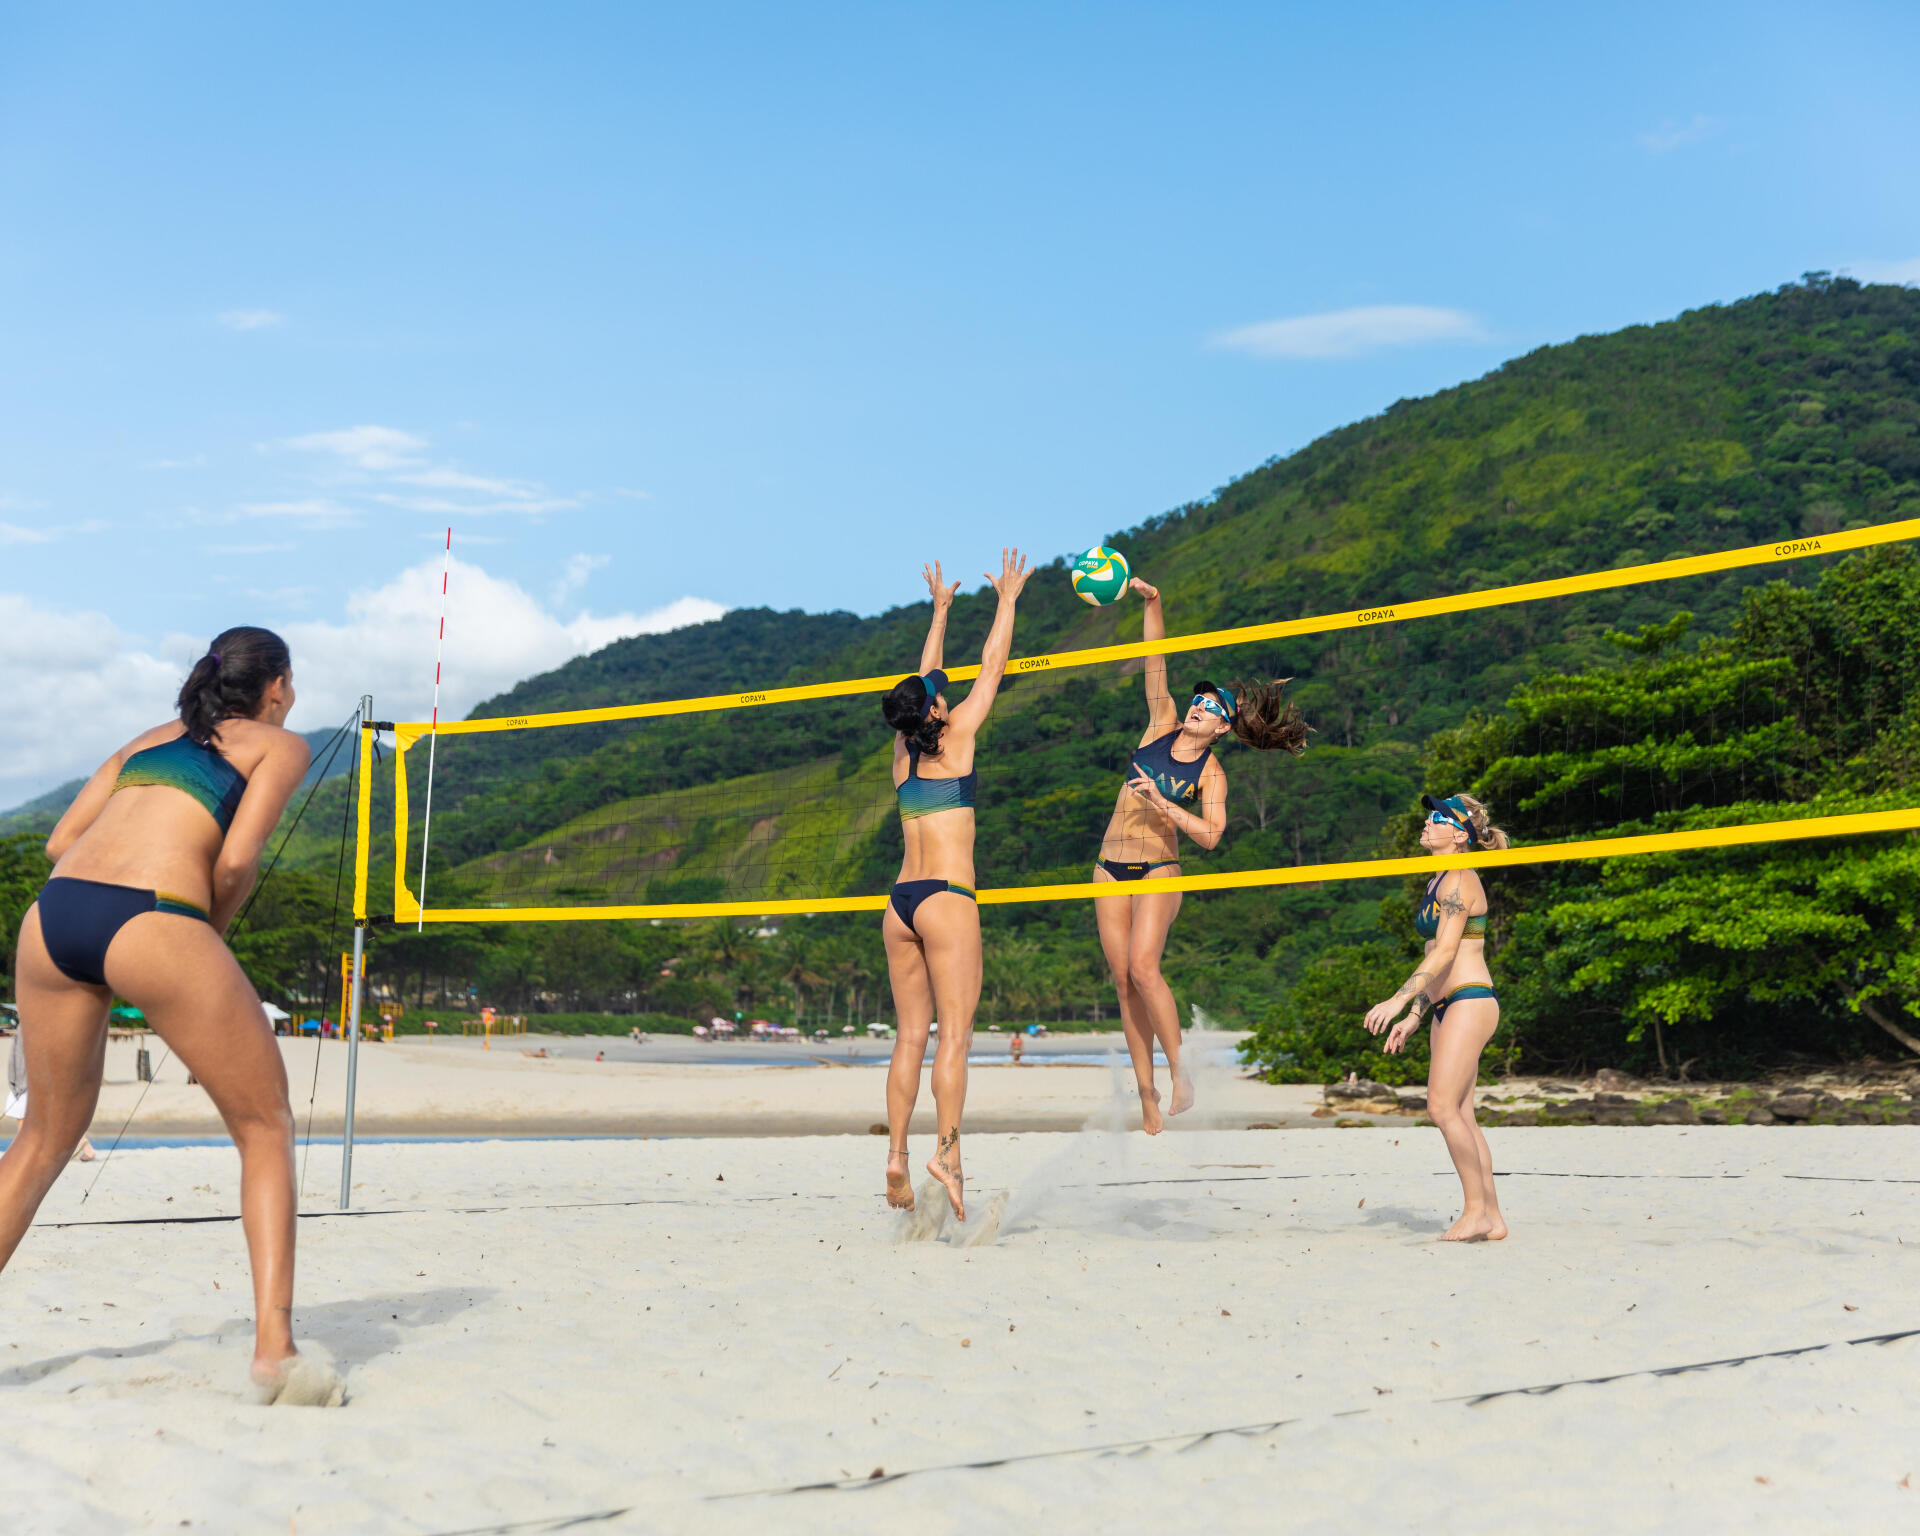 BV900 beach volleyball net